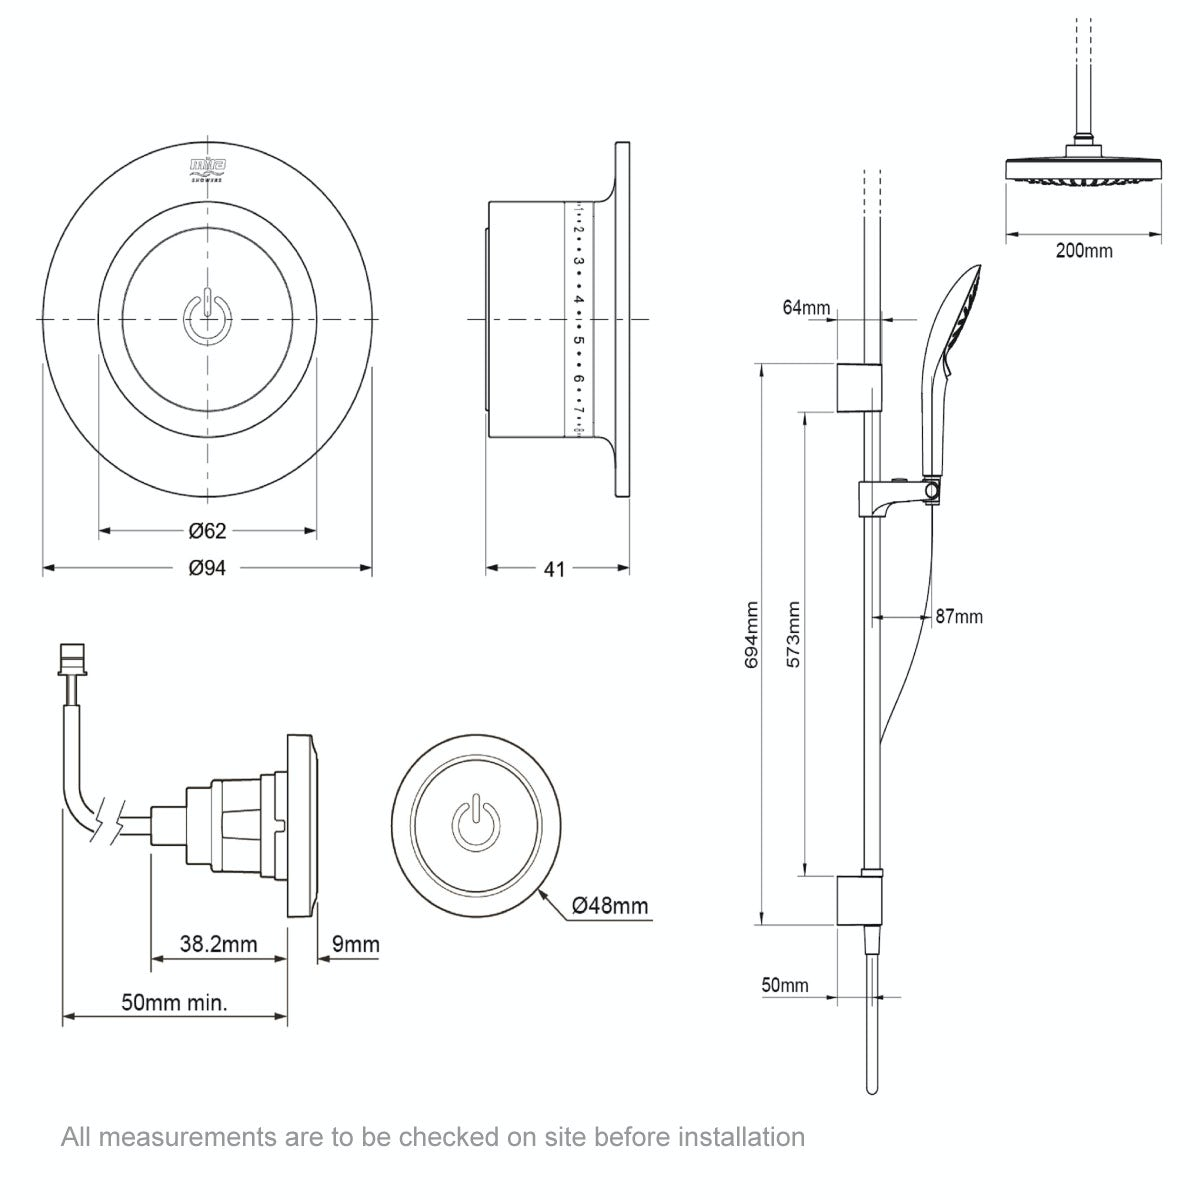 Dimensions for Mira Mode dual ceiling fed digital shower standard